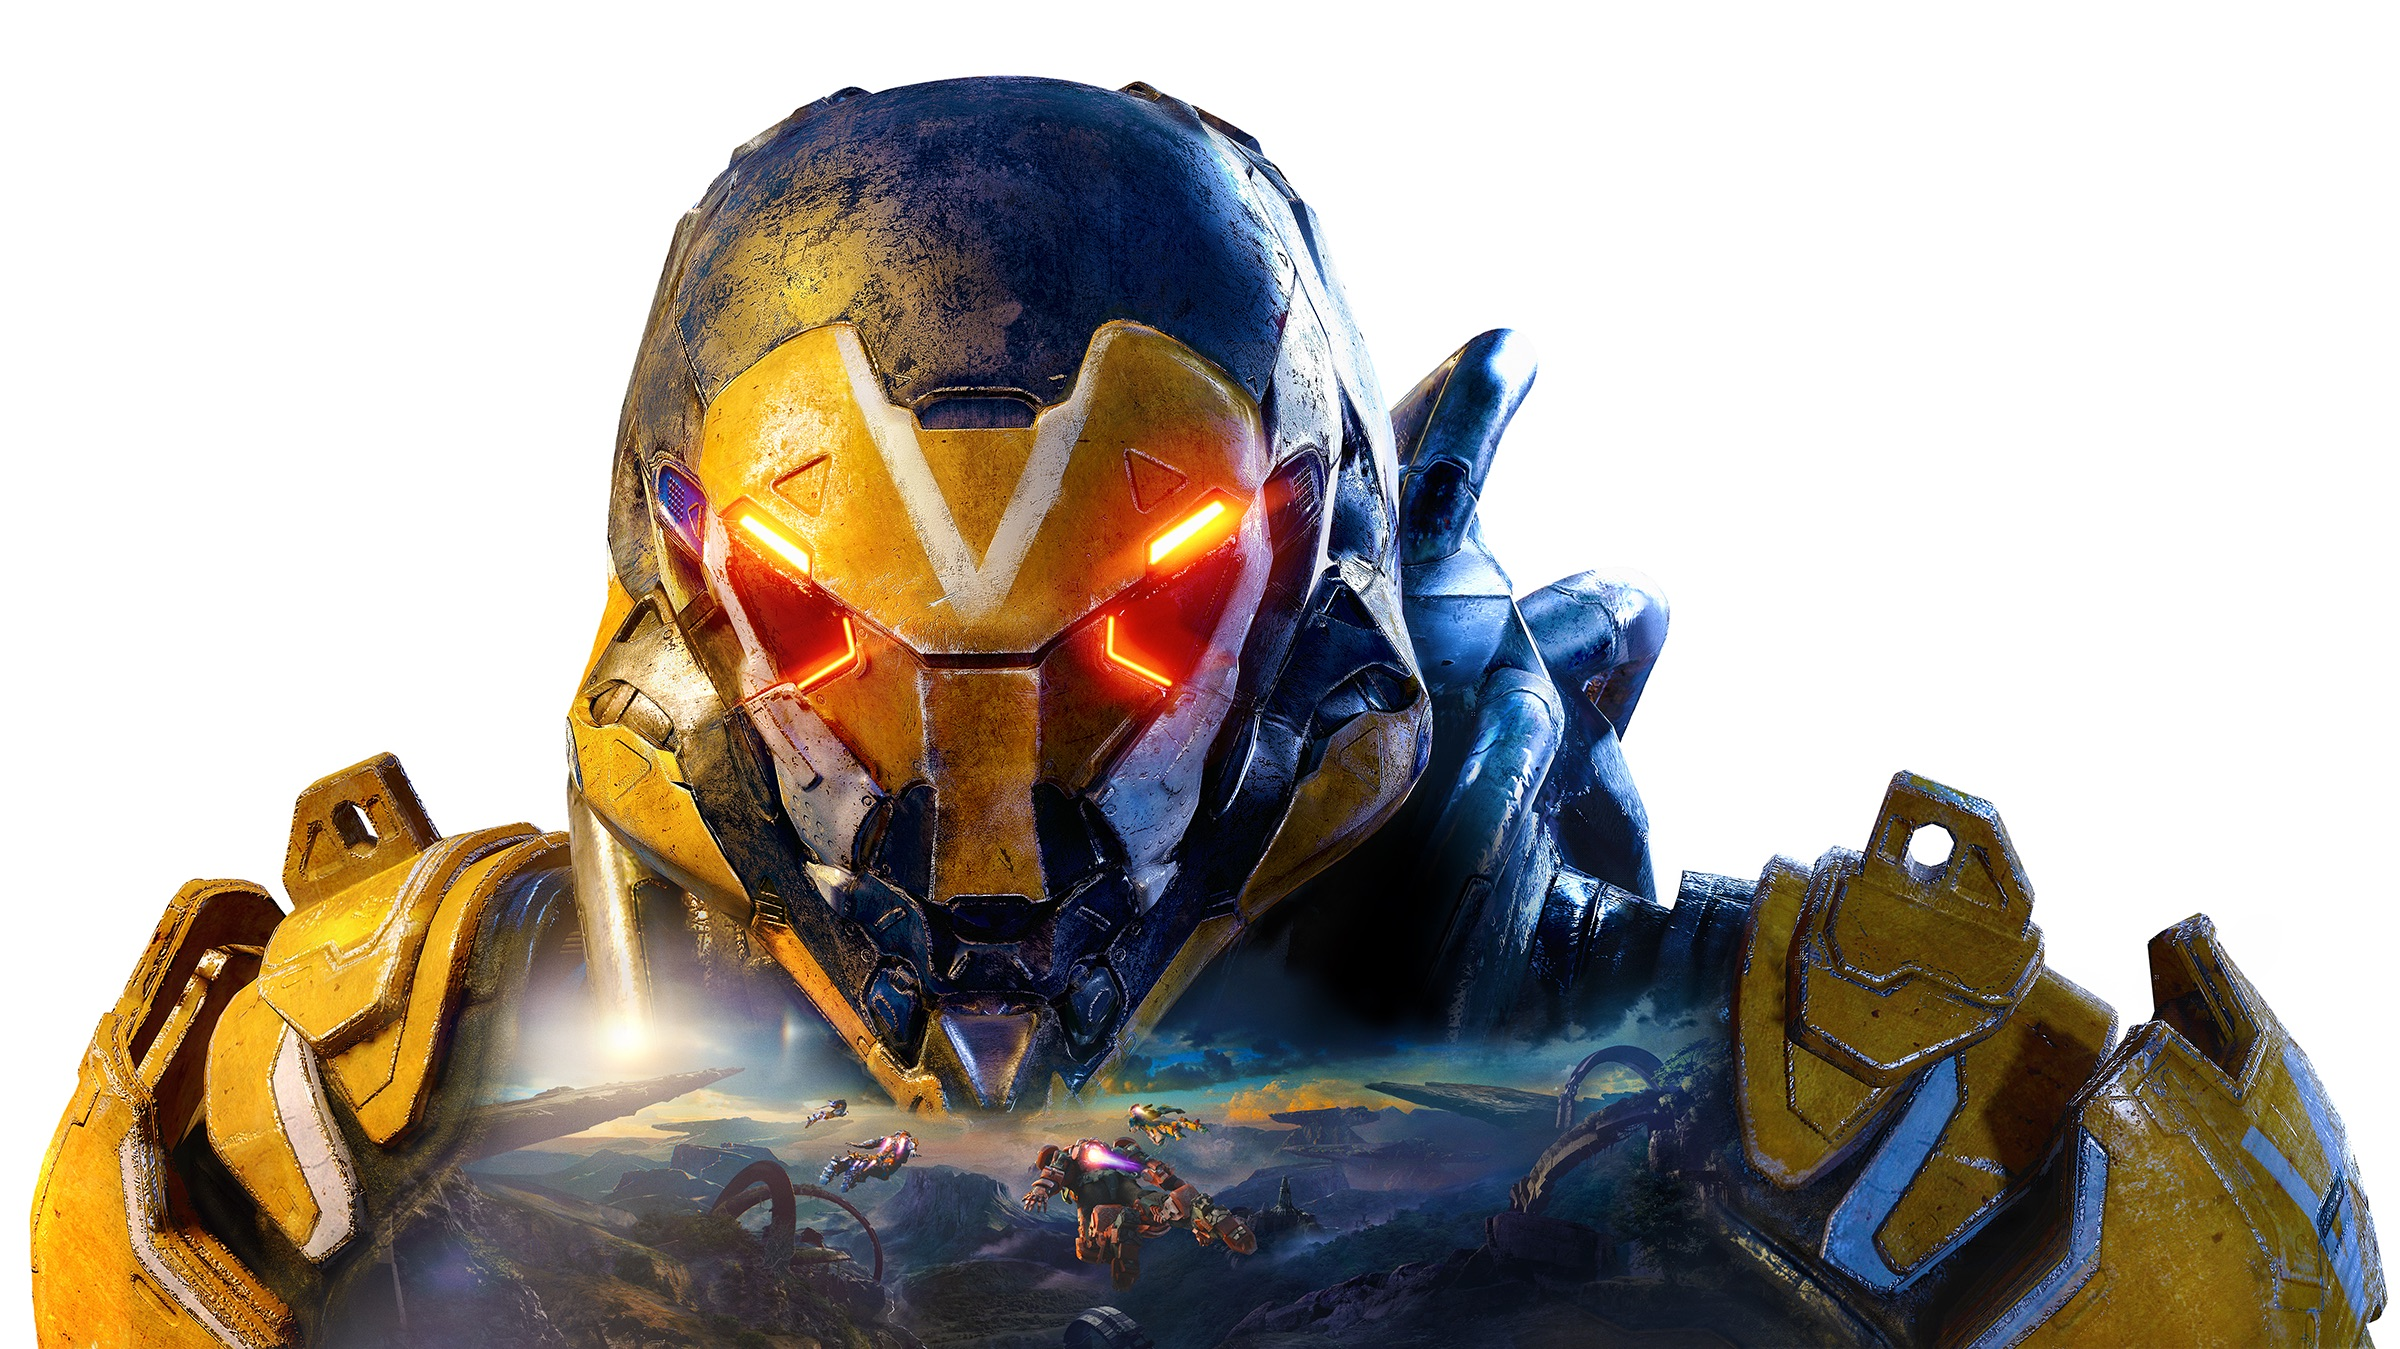 Anthem – BioWare's arrogance holds this loot shooter back from greatness